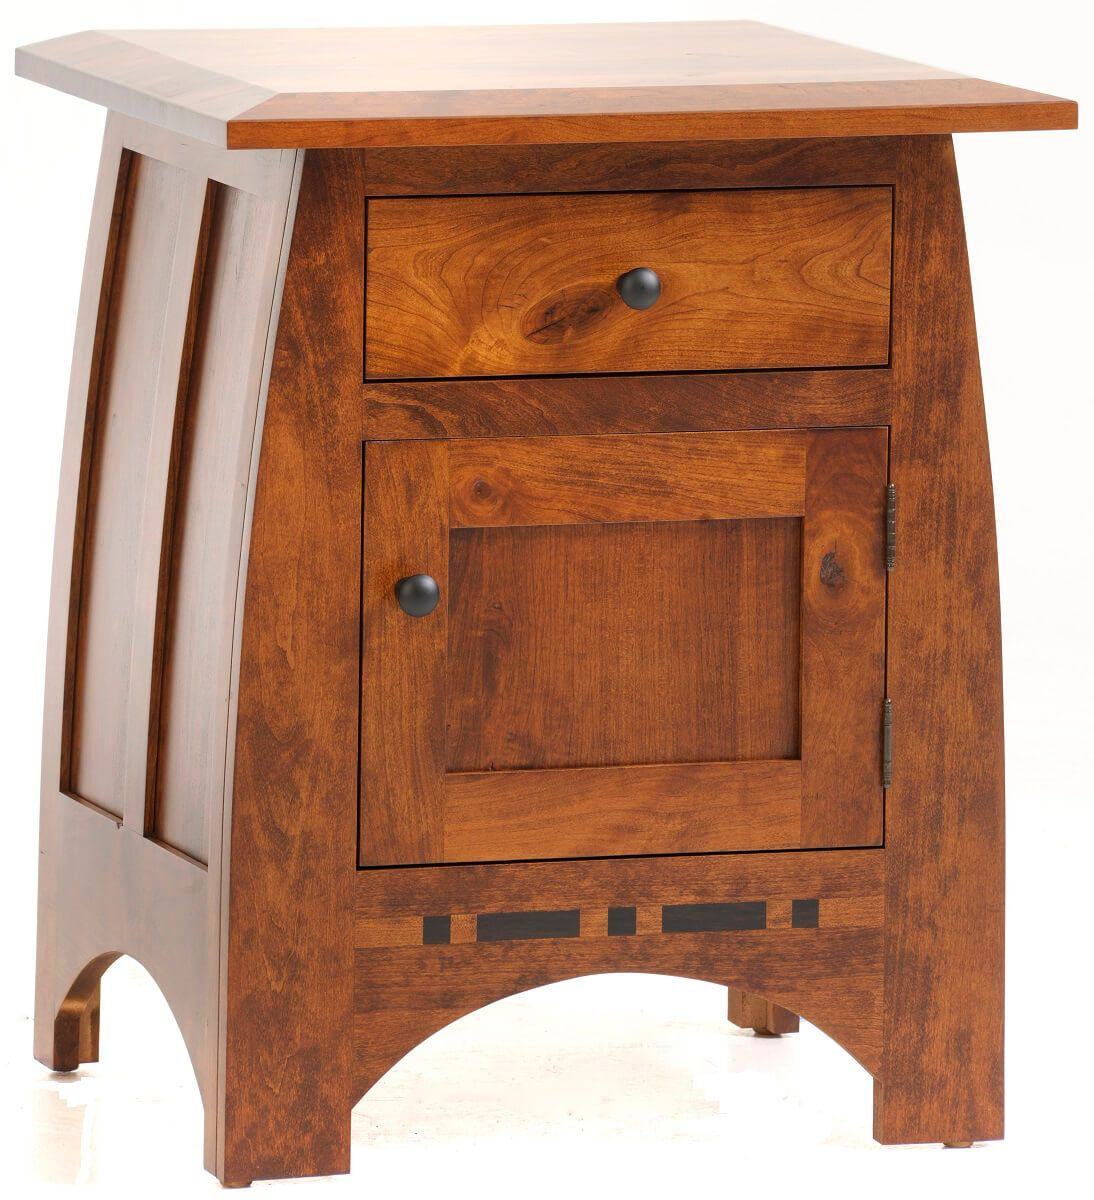 Palmina Rustic Cherry Nightstand with Door